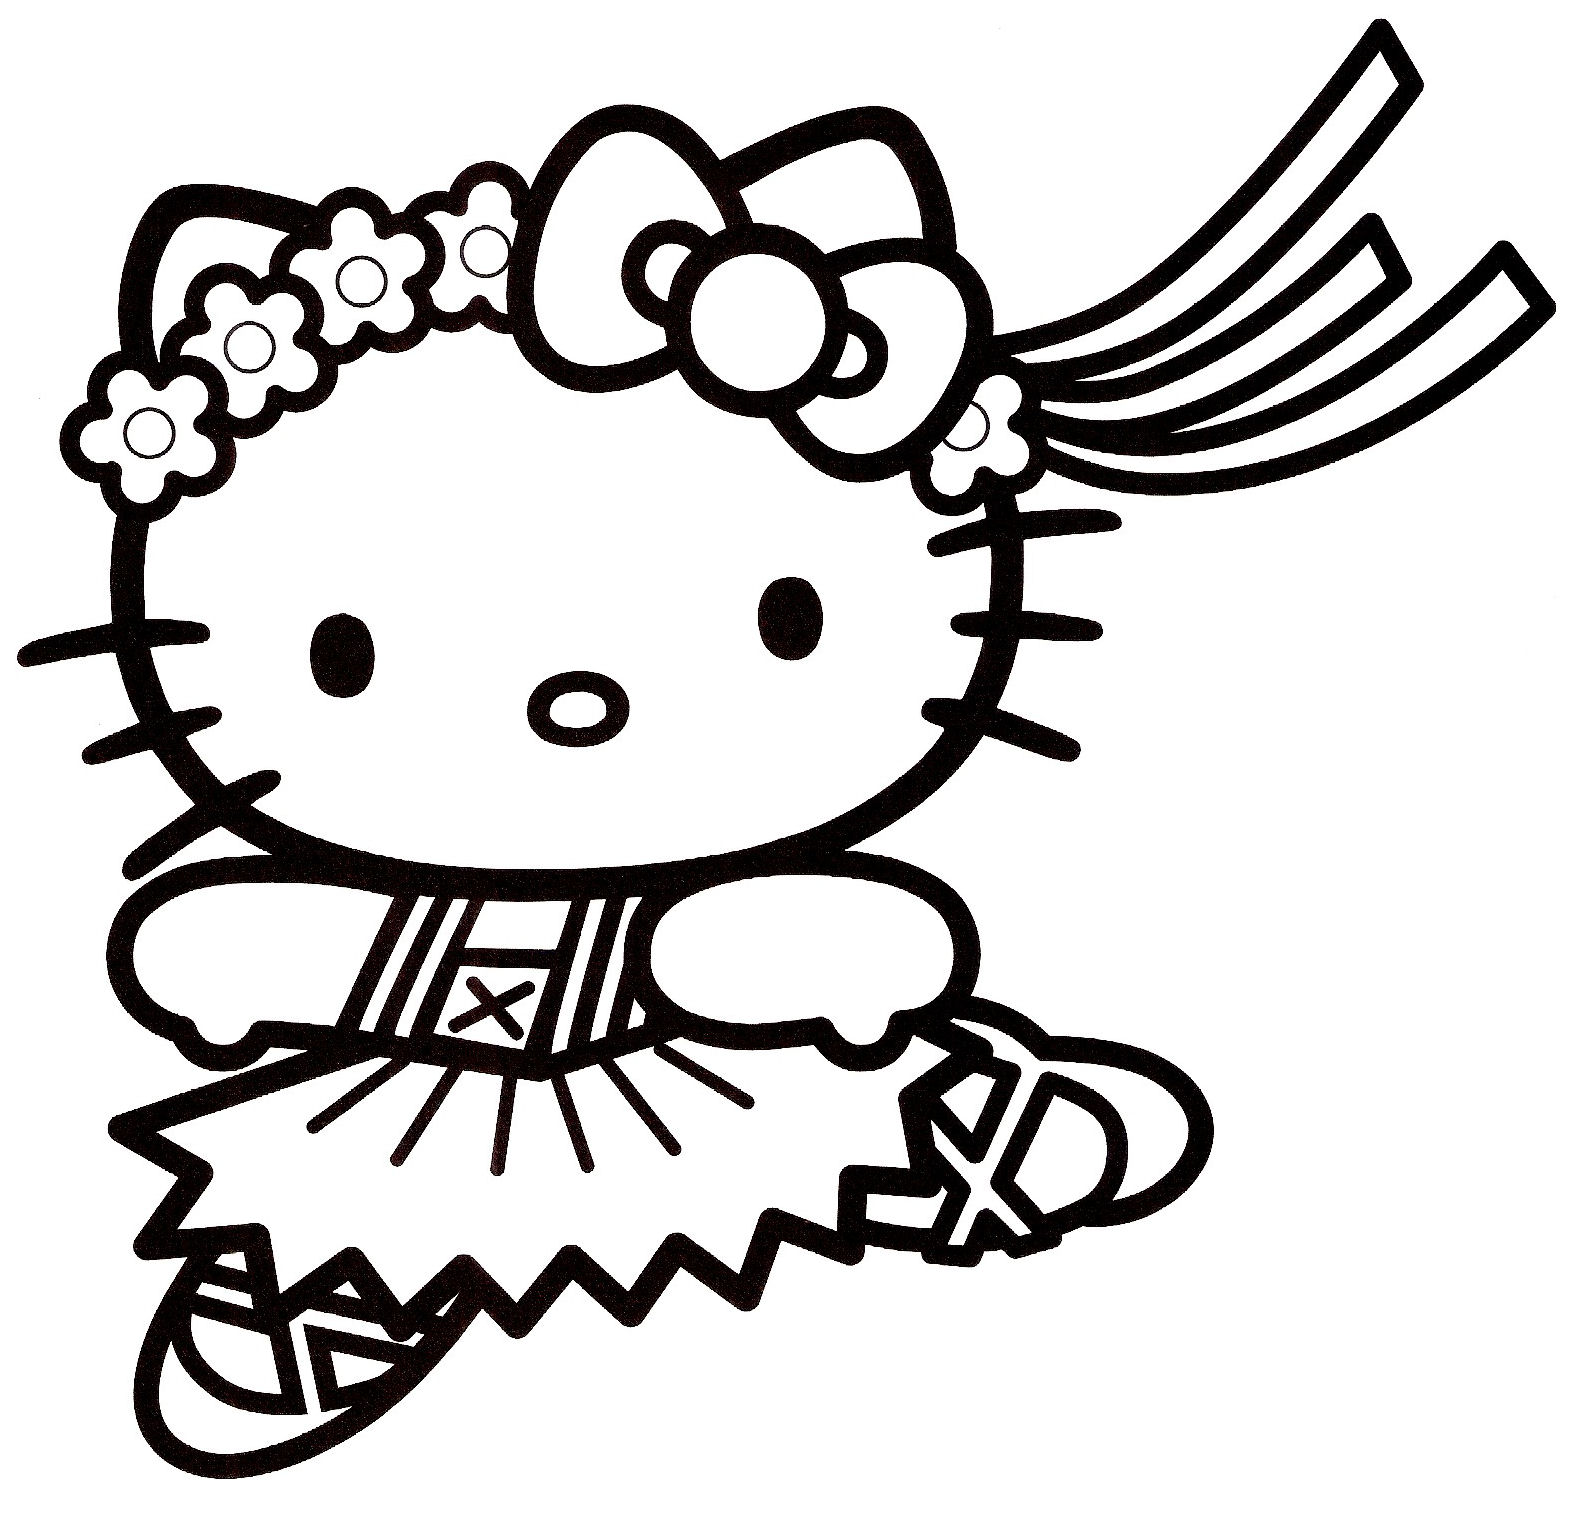 140 dessins de coloriage hello kitty imprimer - Hello kitty jeux coloriage ...